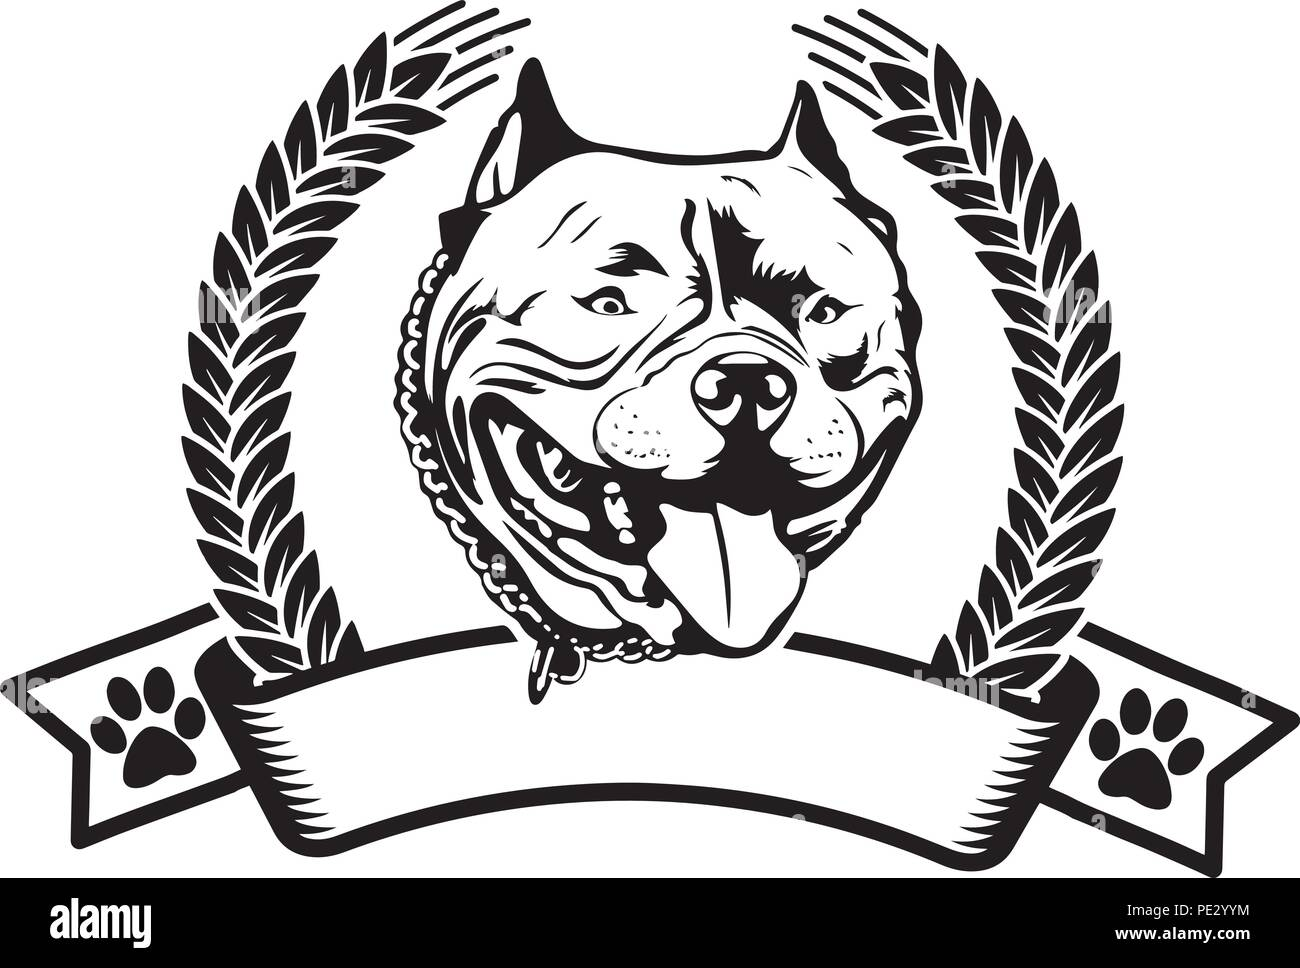 Pit Bull Pitbull Dog Dog Breed Pet Puppy Isolated Head Face Stock Vector